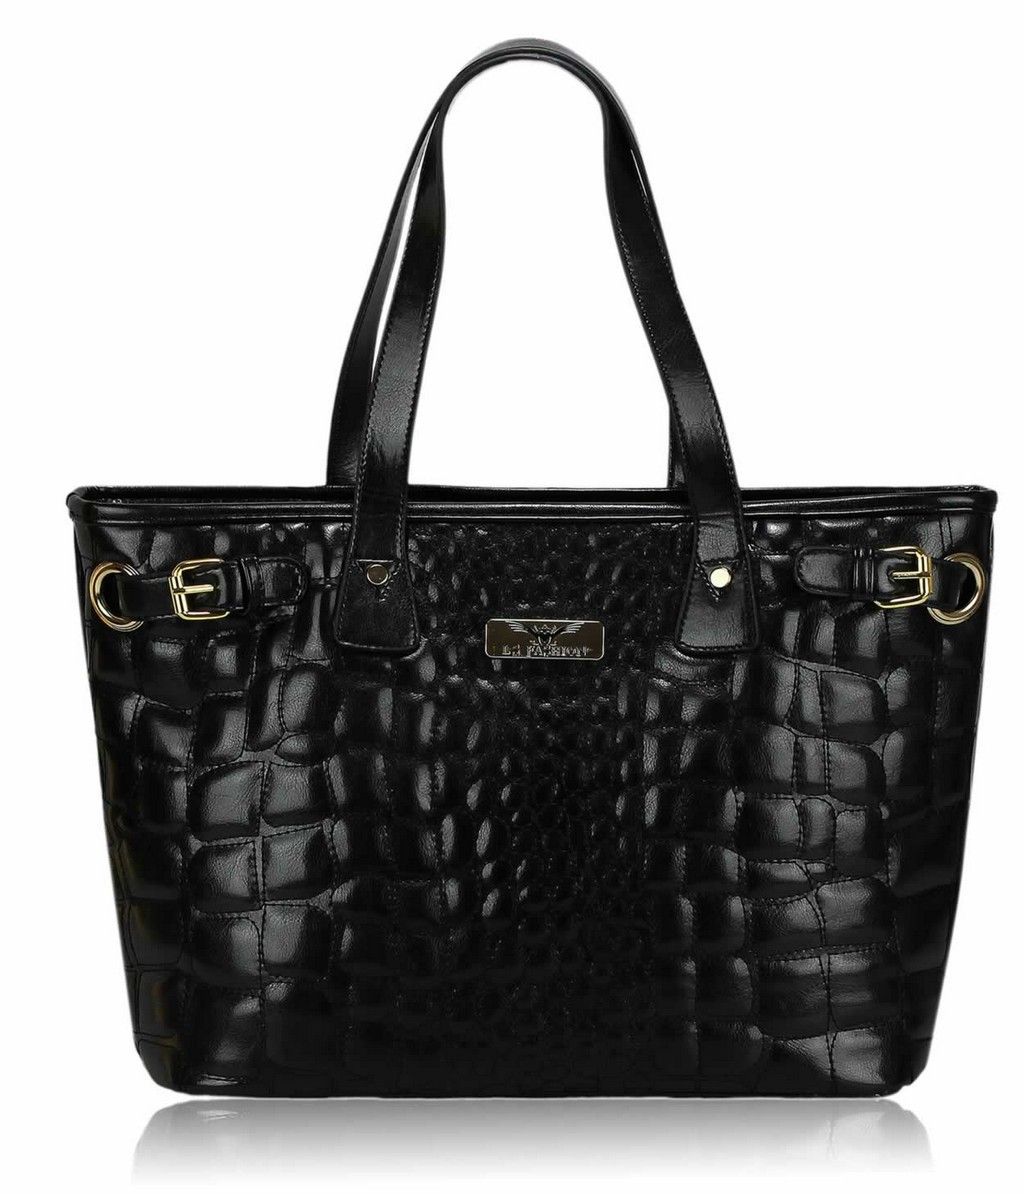 wholesale quilted tote bags donna sharp handbags wholesale wholesale authentic designer handbags wholesale handbags los angeles